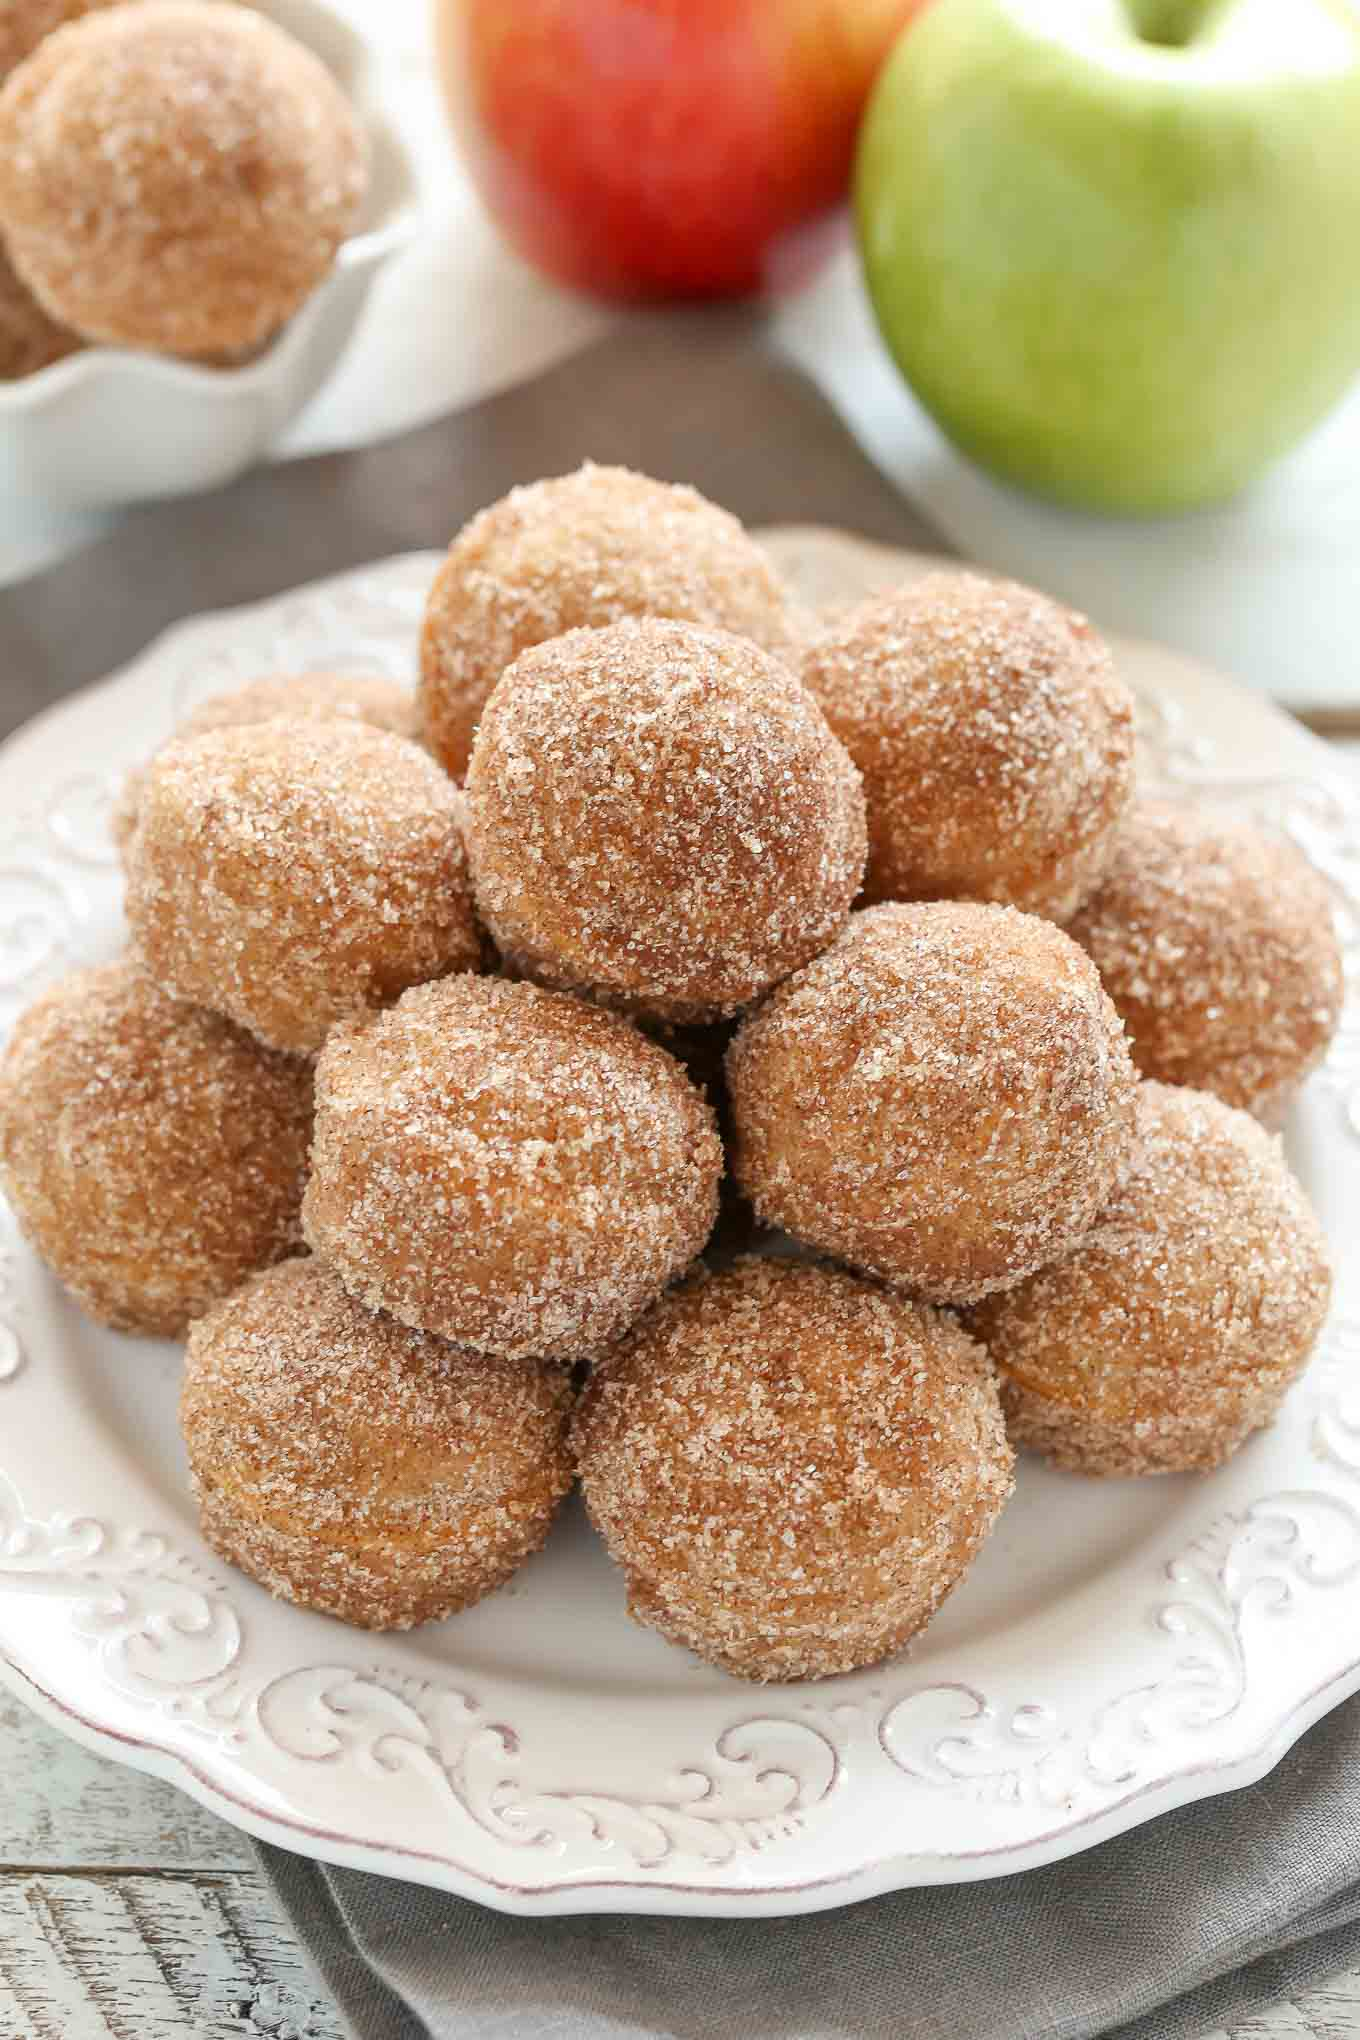 A white plate piled high with apple cider donut holes. Two apples rest in the background.